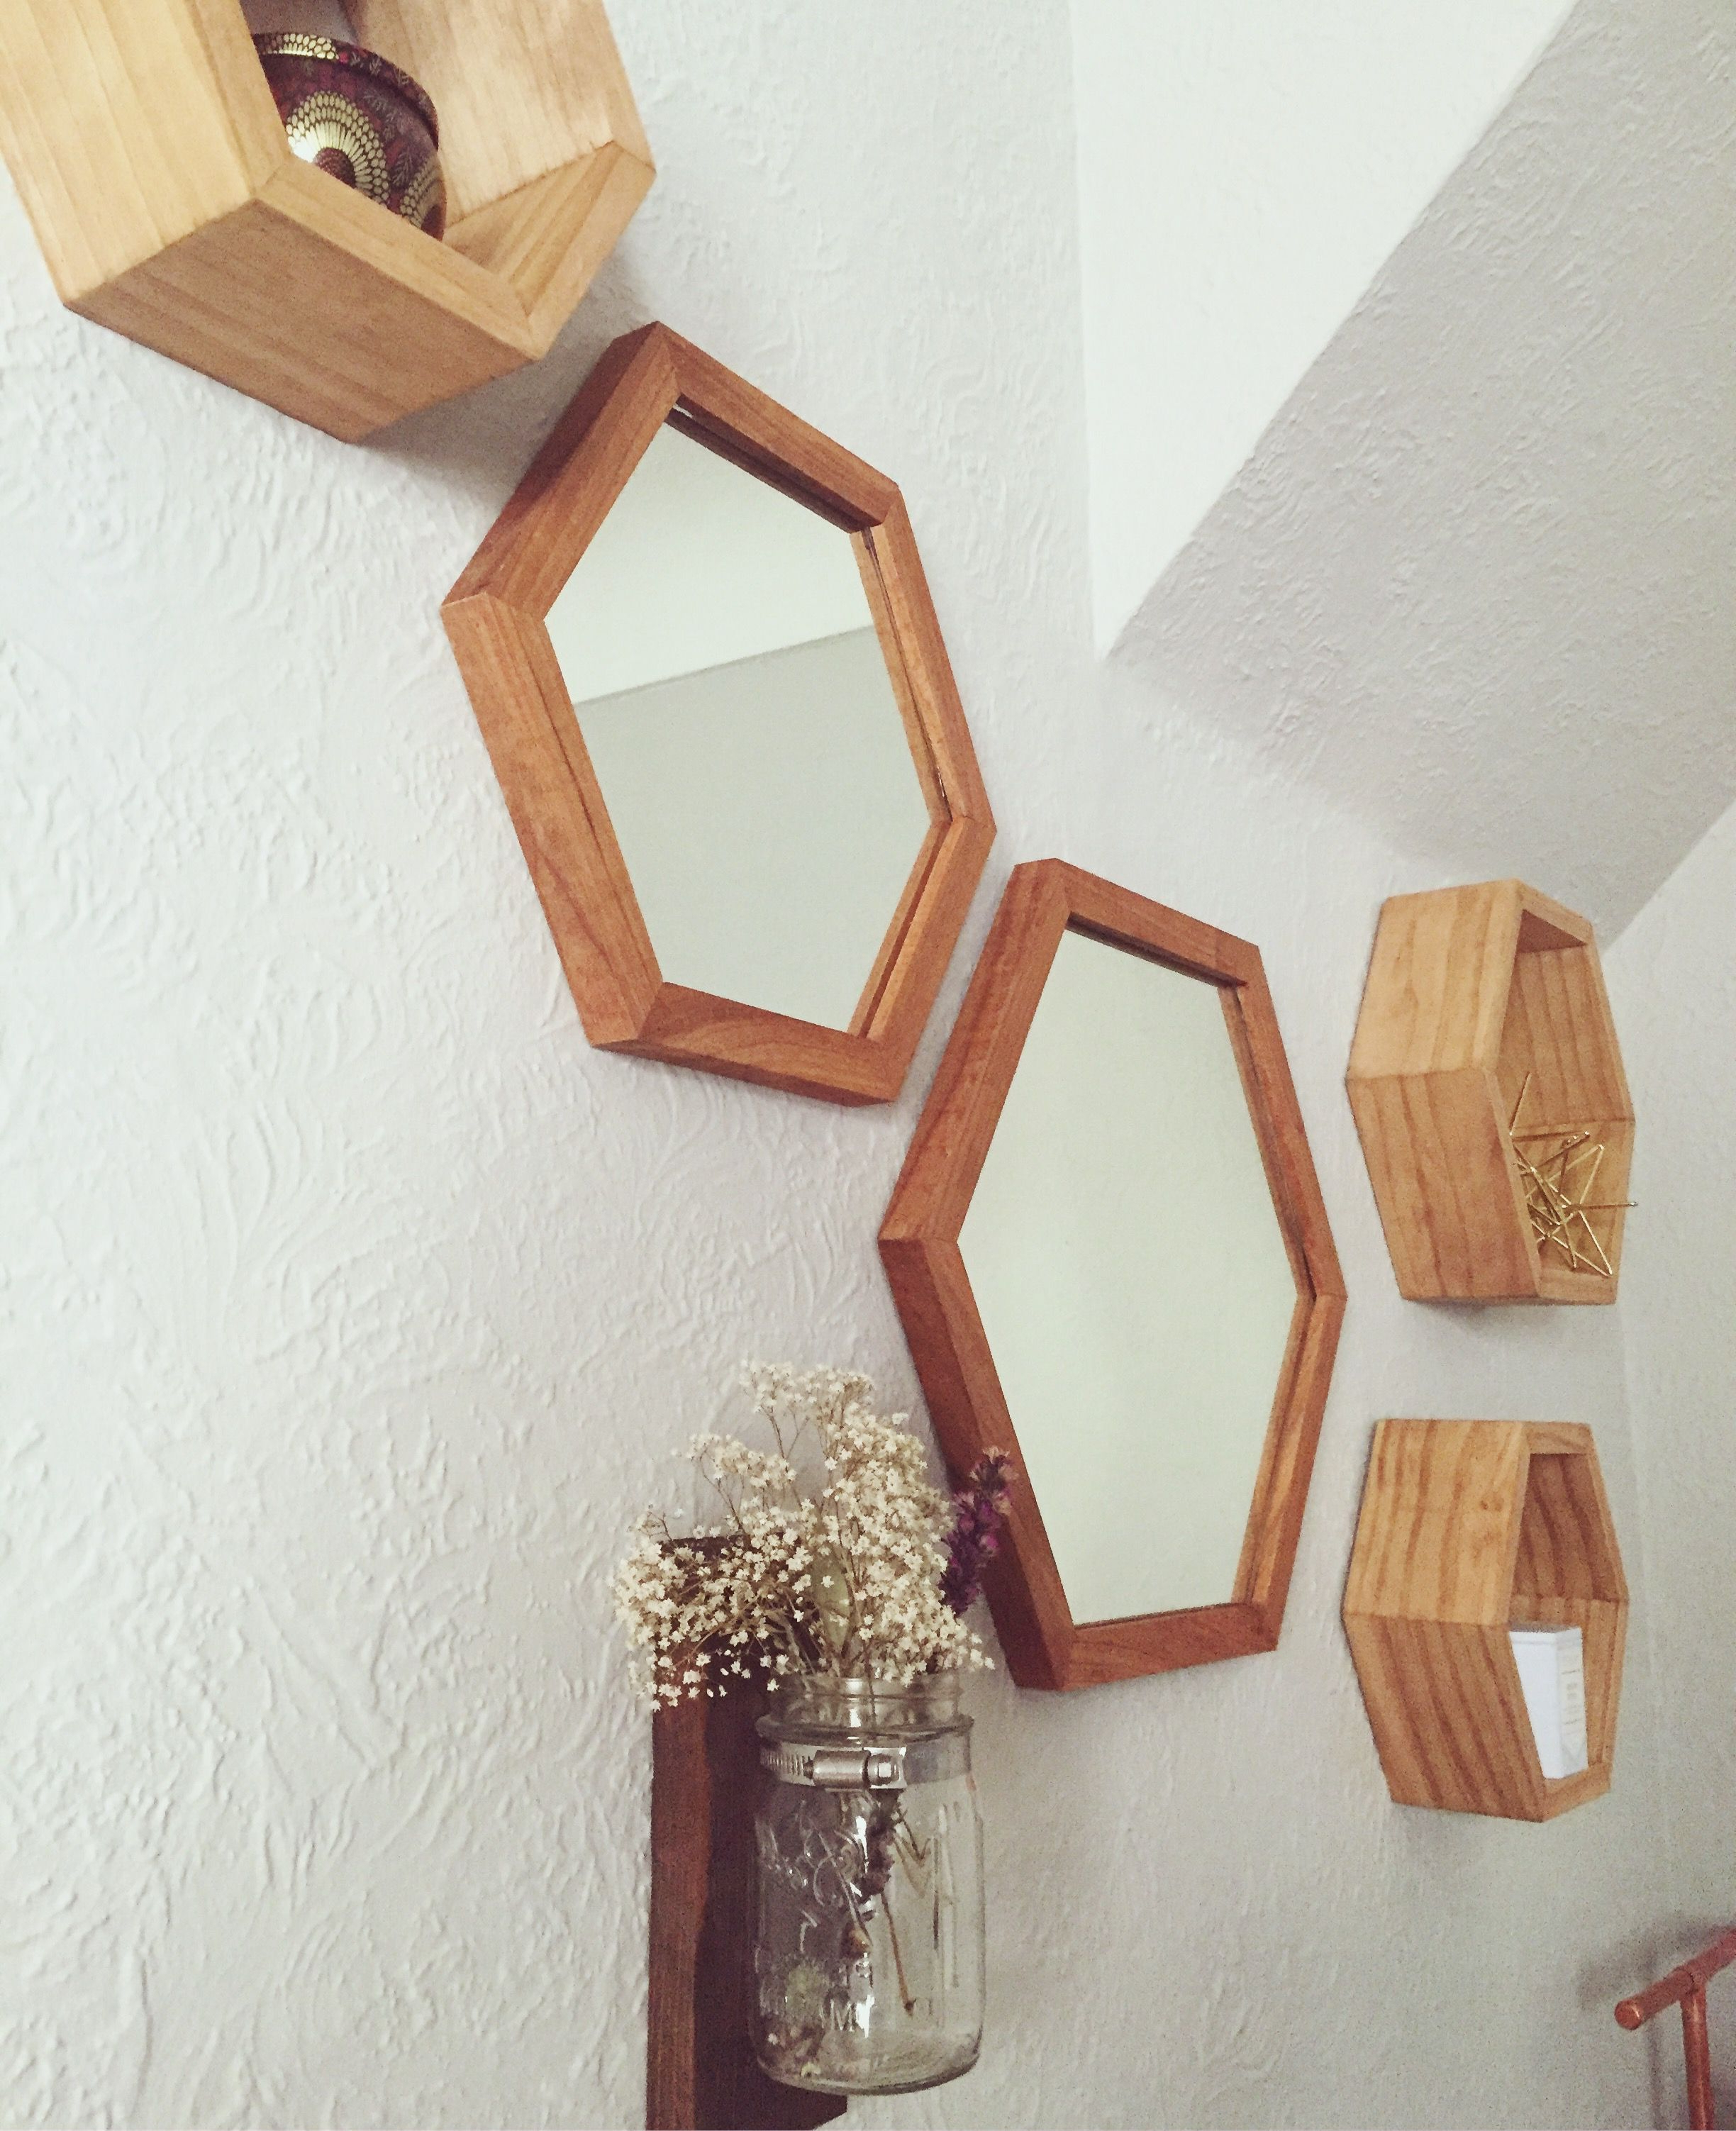 Modern Wall Decor: Hexagon Mirrors With Cherry Wood Frames Paired In Famous Cherry Wood Framed Wall Mirrors (View 19 of 20)